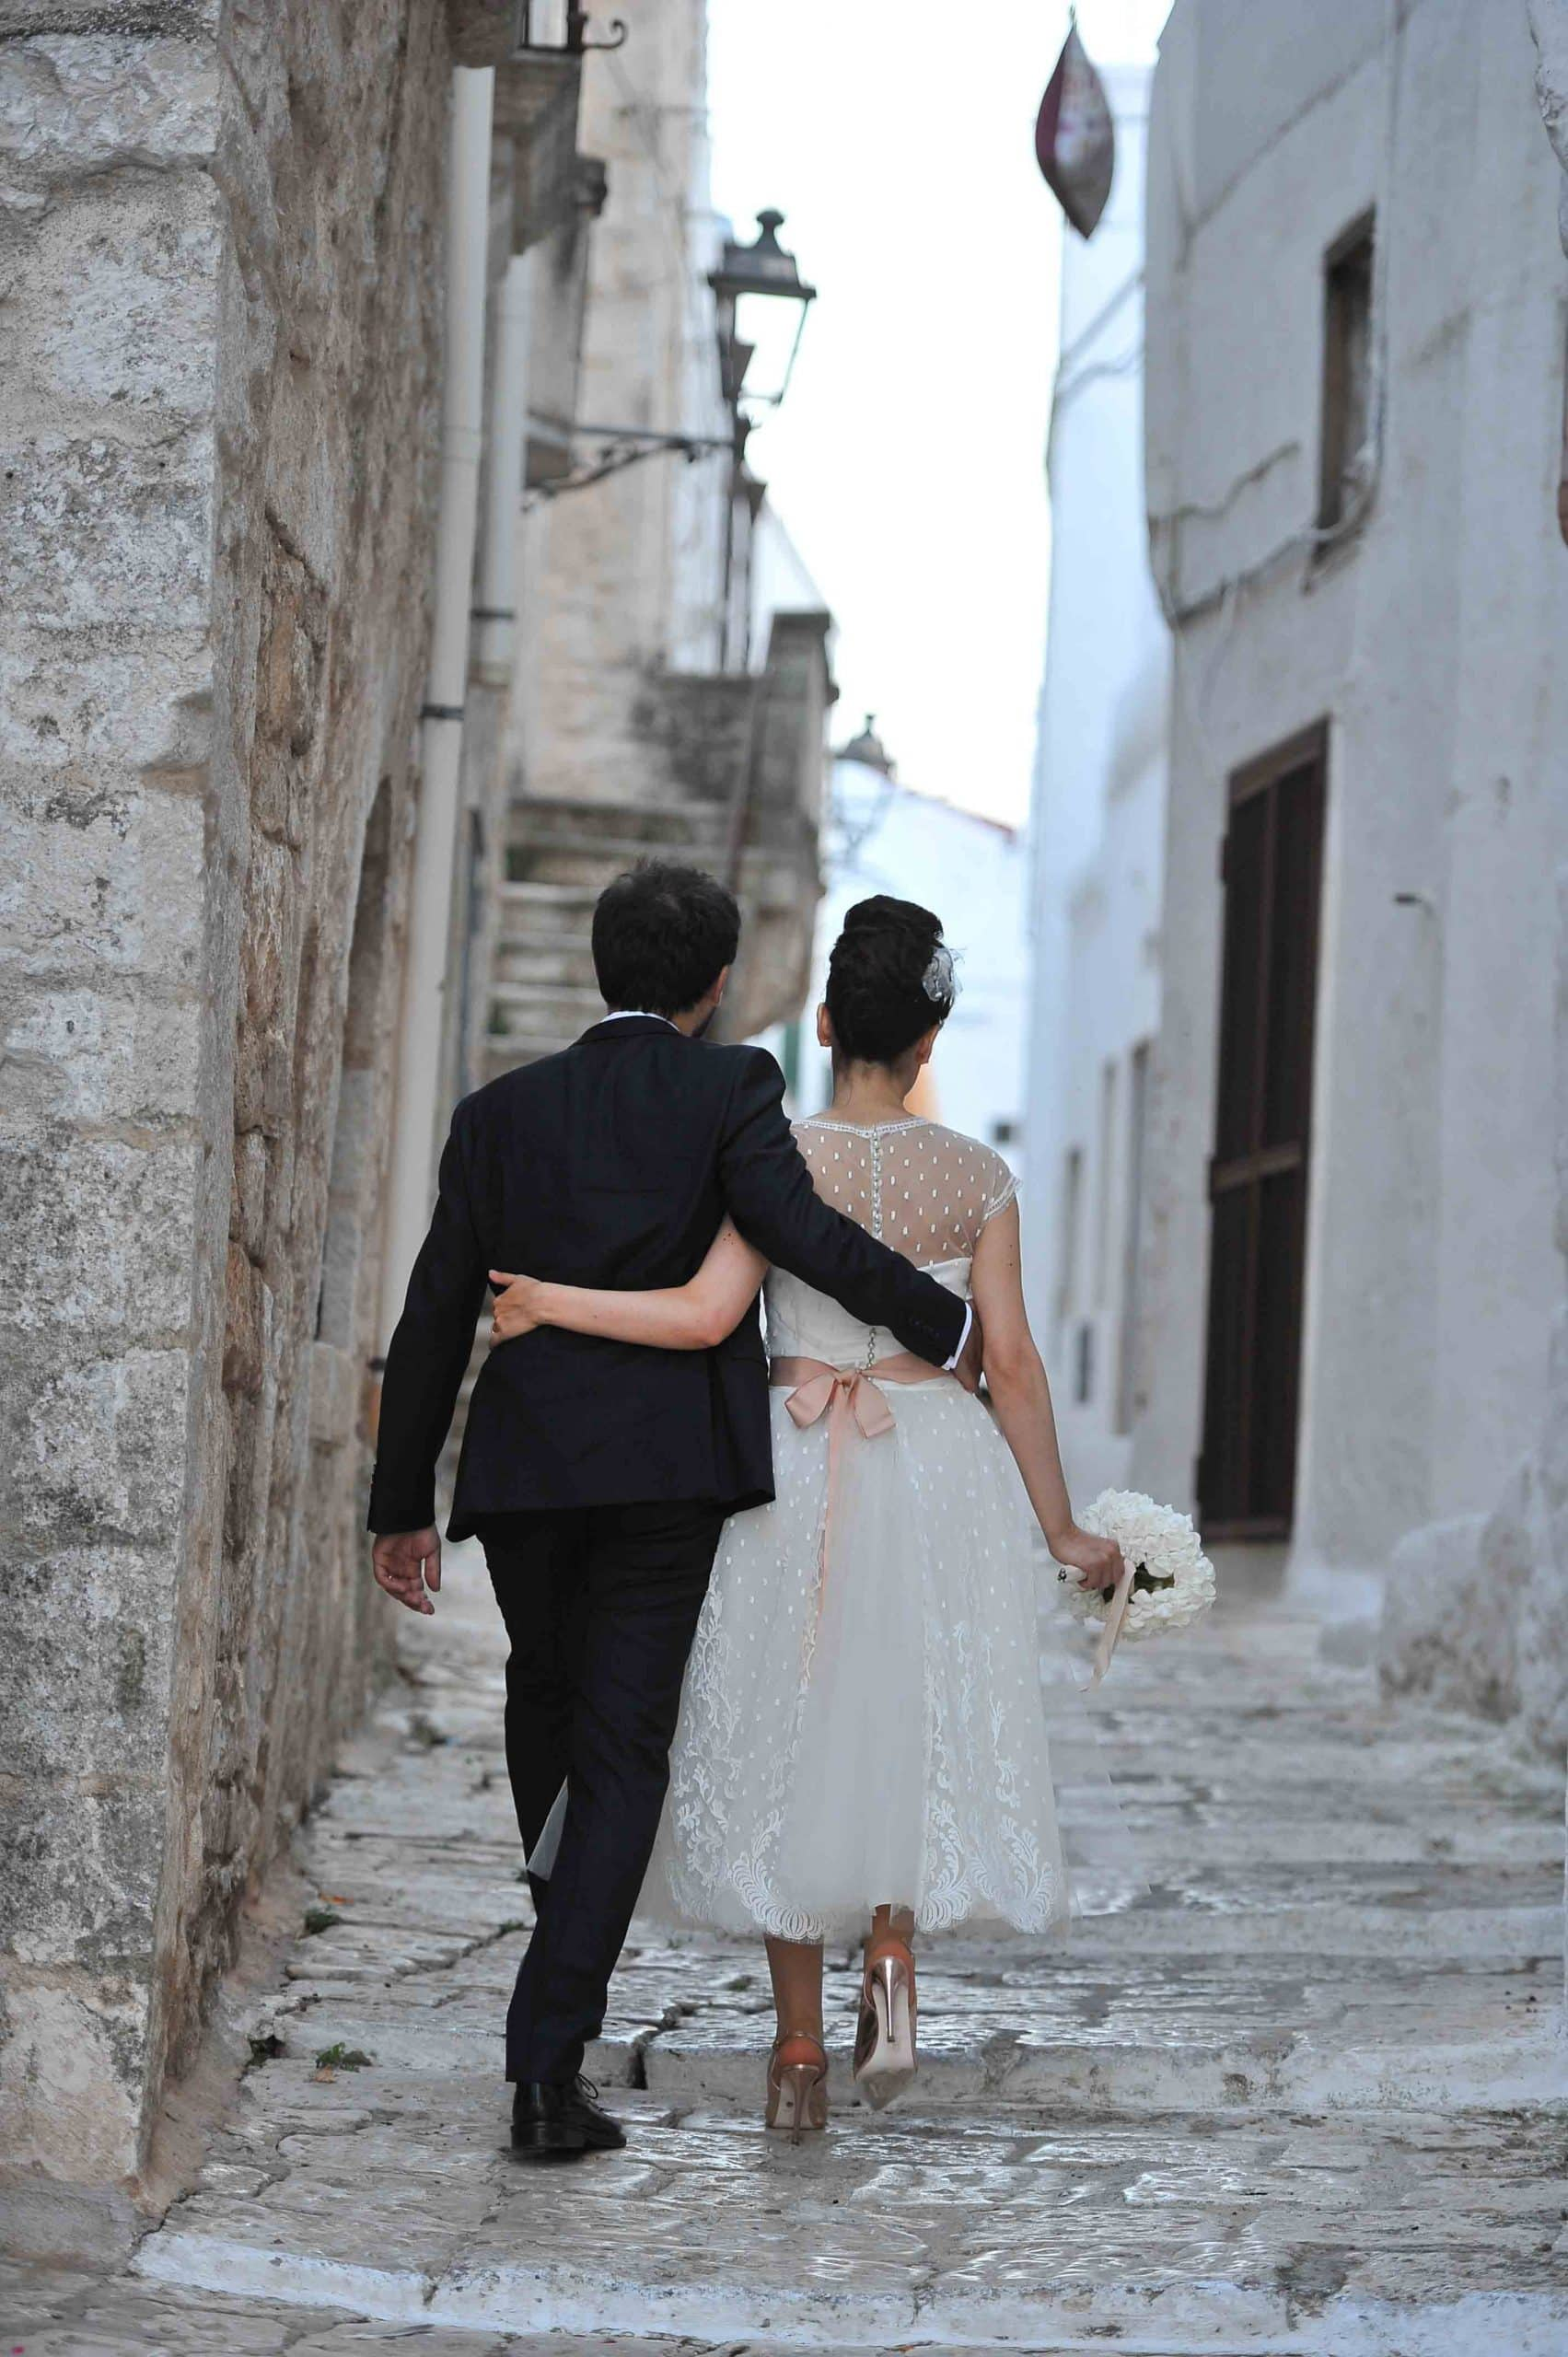 10 Tips for Planning an Elopement in Italy during Covid-19 Emergency